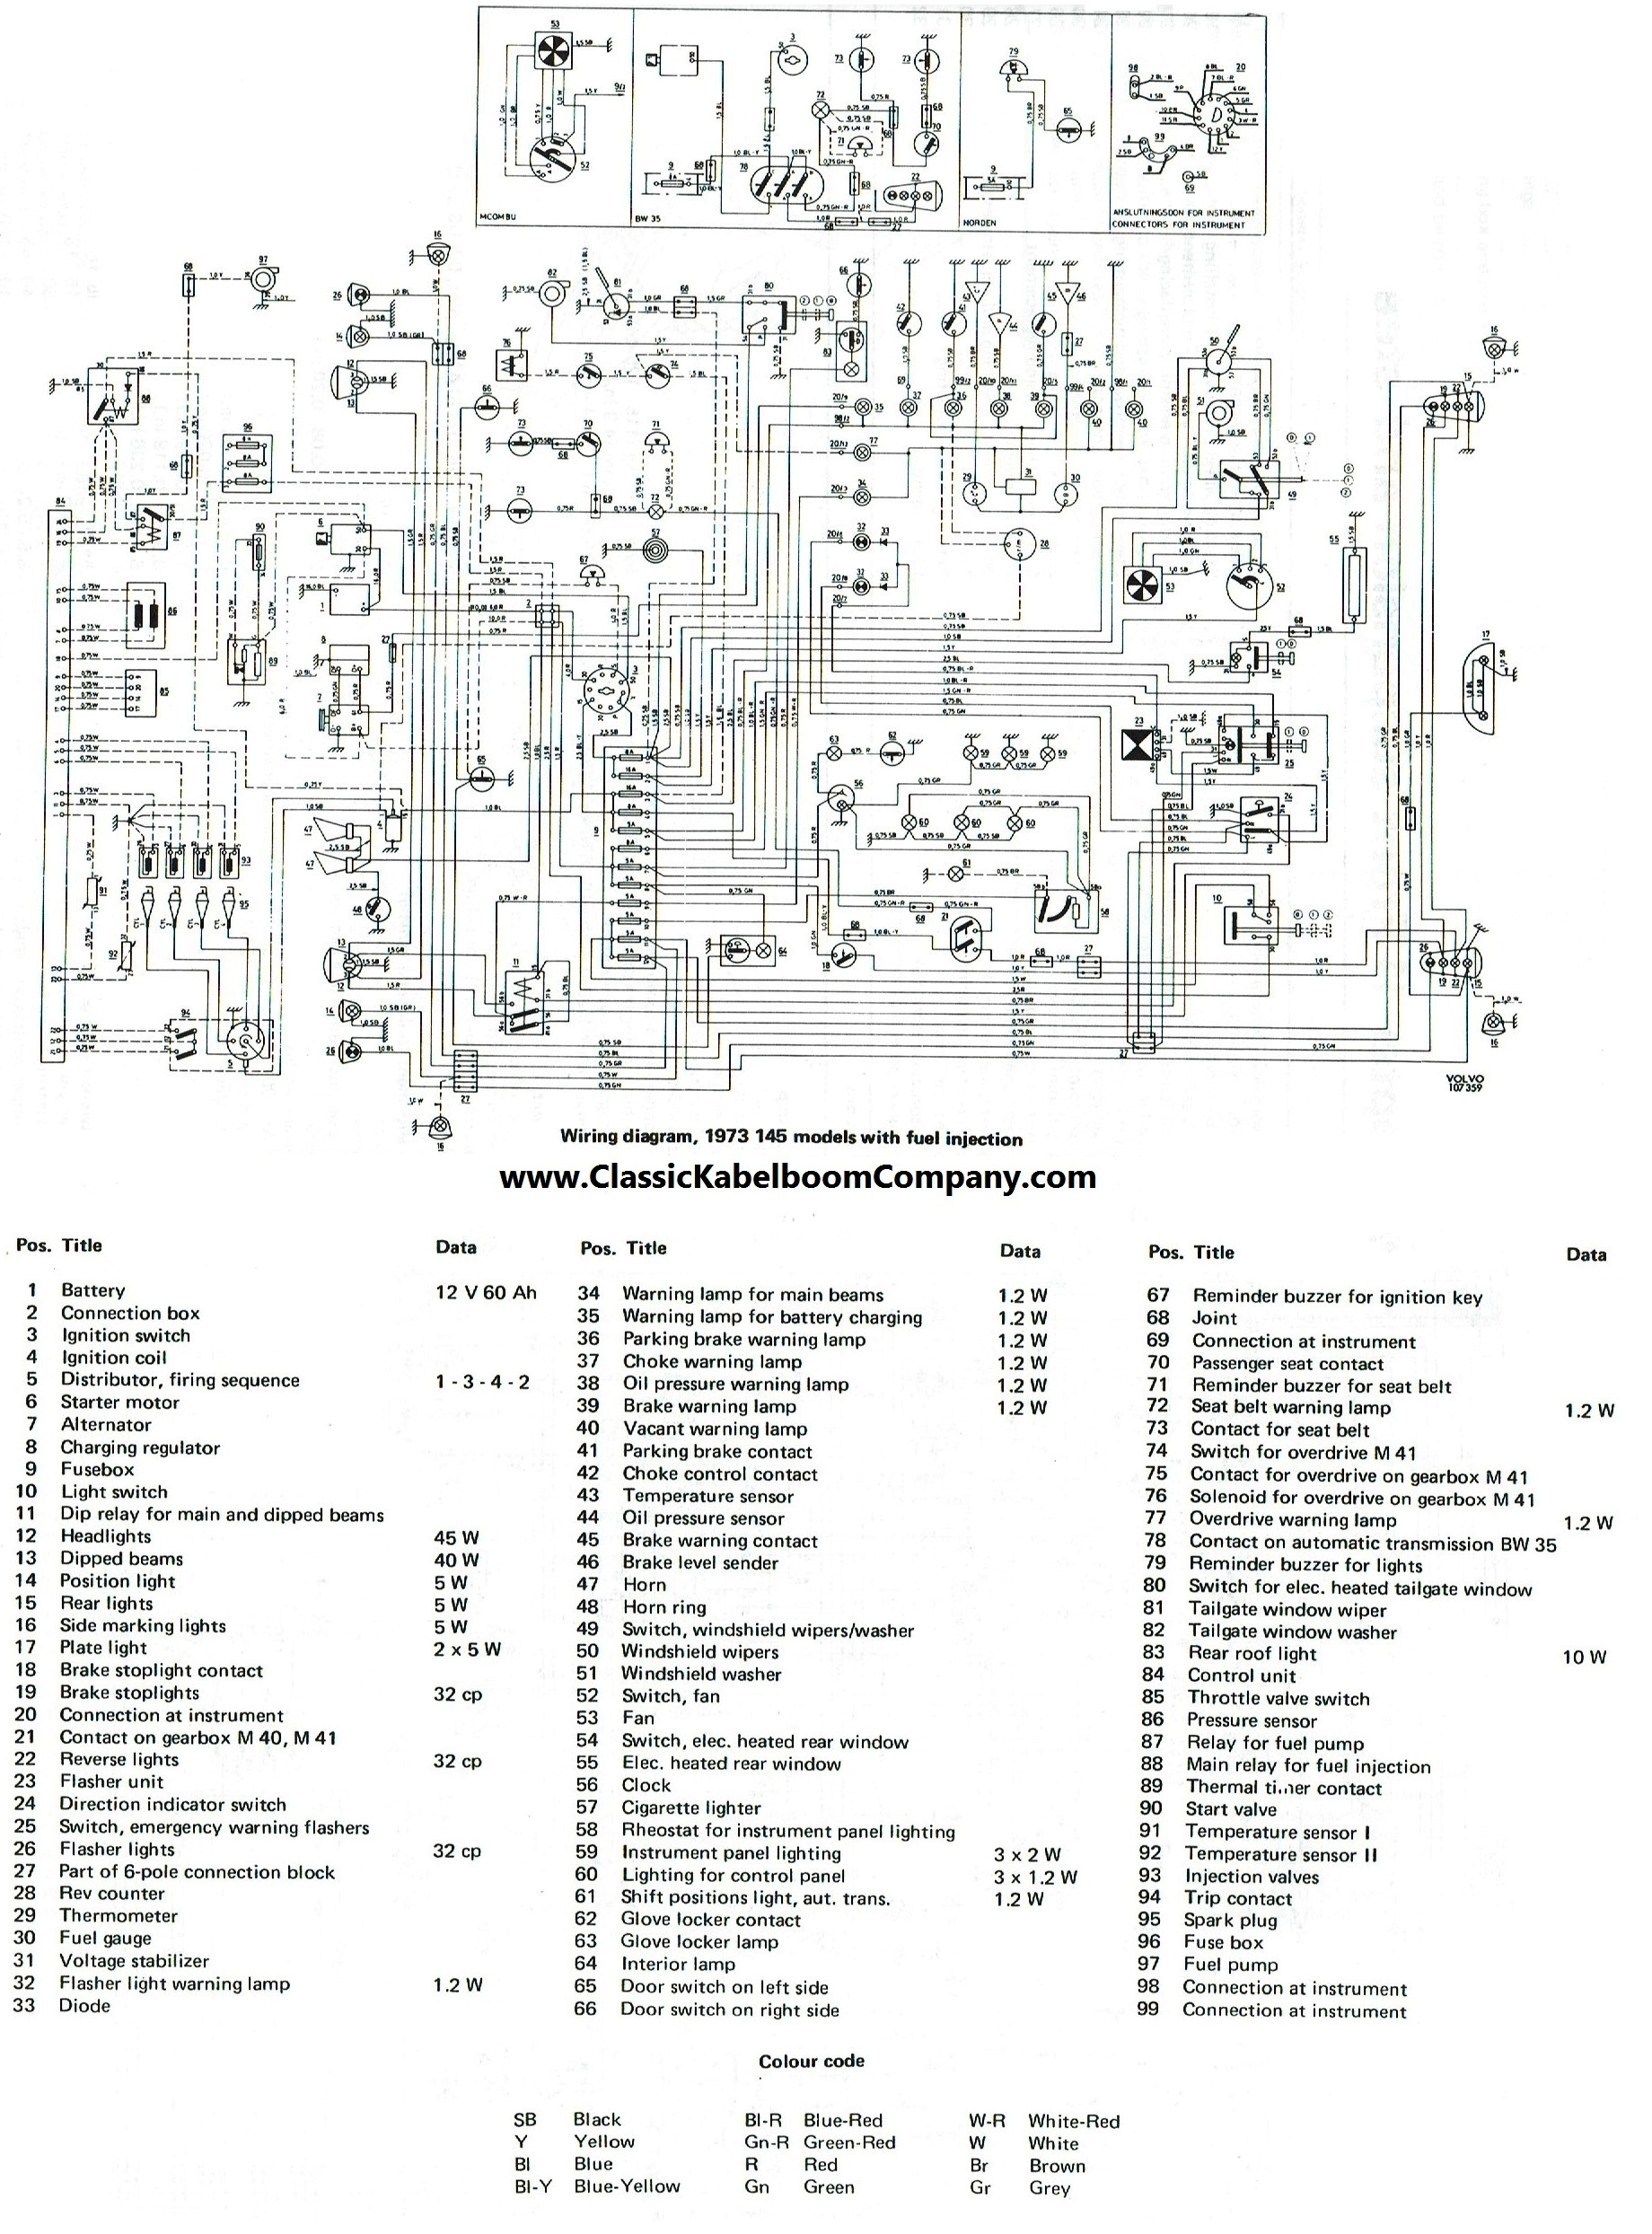 Volvo 140 142 144 145 1973 1974 D-jetronic fuel injection injectie B20E E electrical  wiring diagram elektrisch bedrading schema.